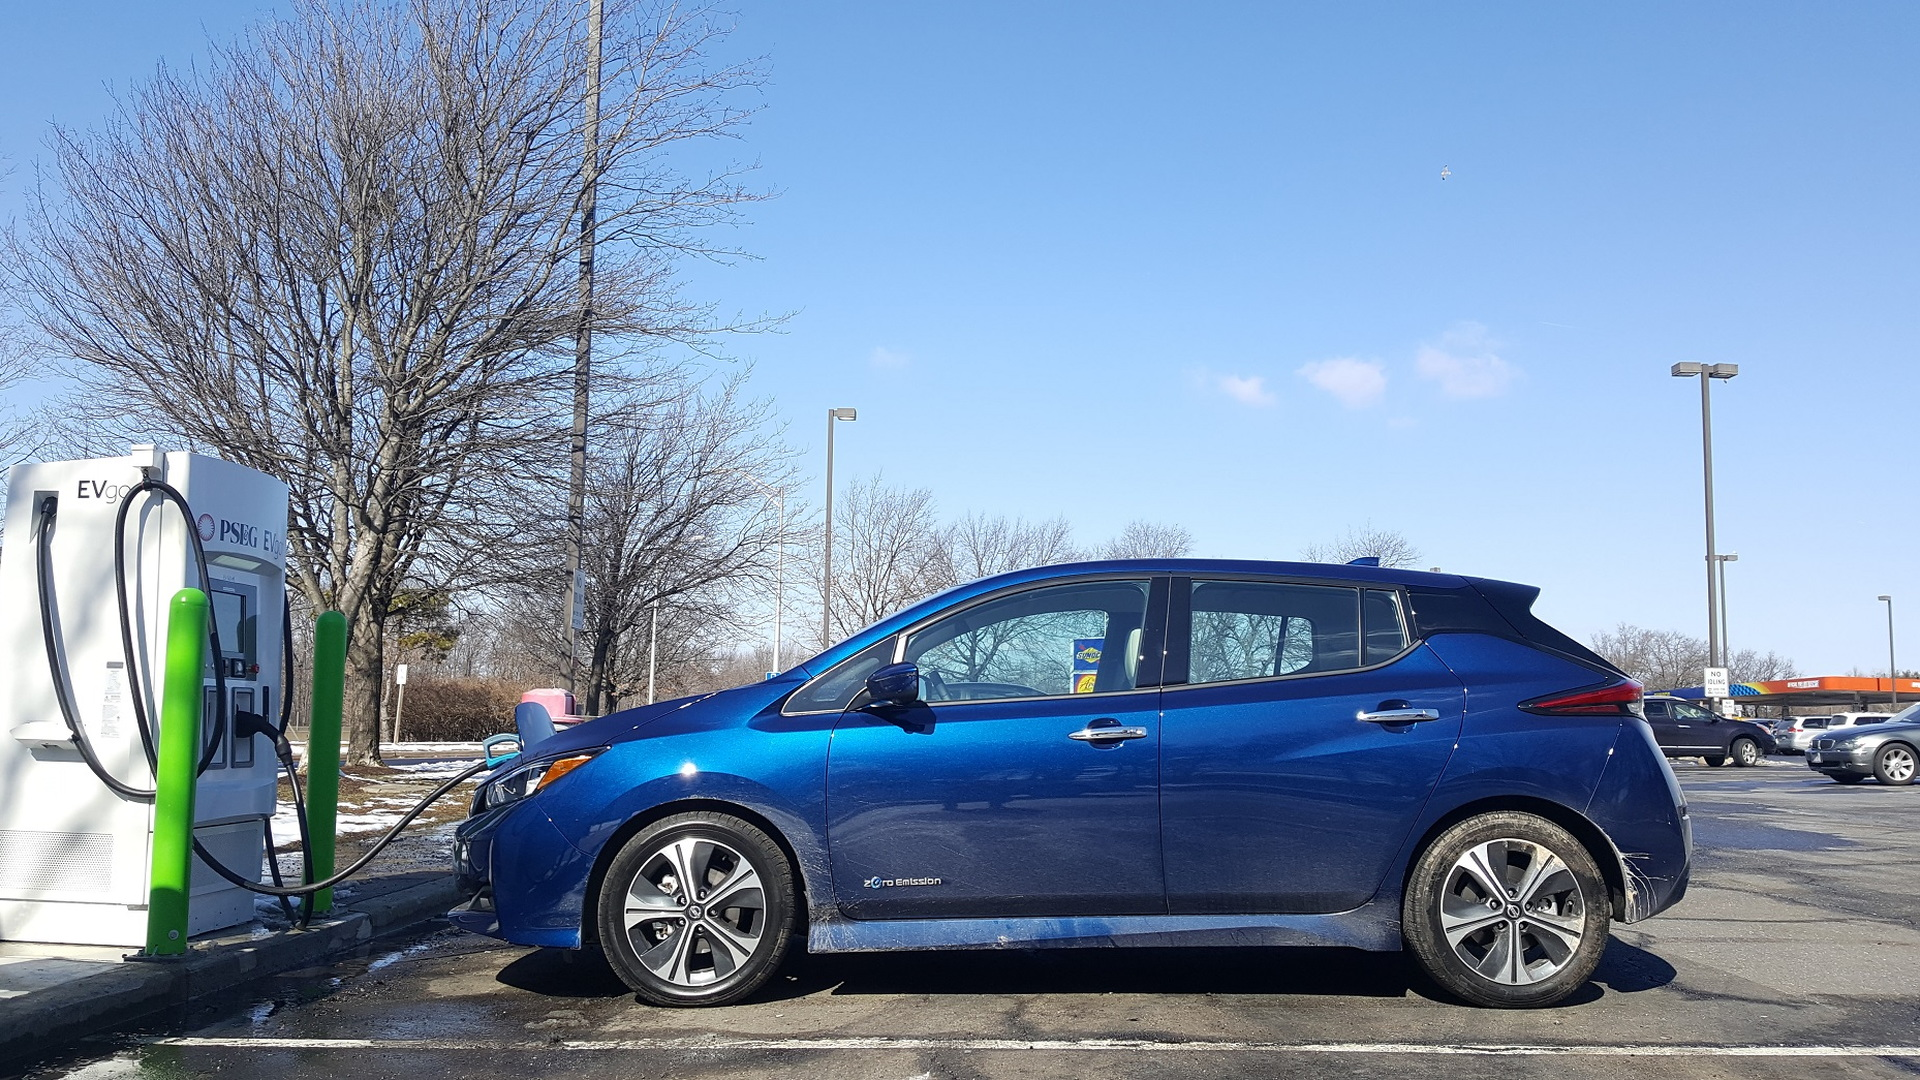 Two 2018 Nissan Leafs with EVgo fast charger at NJ Turnpike Joyce Kilmer travel plaza, Feb 2018